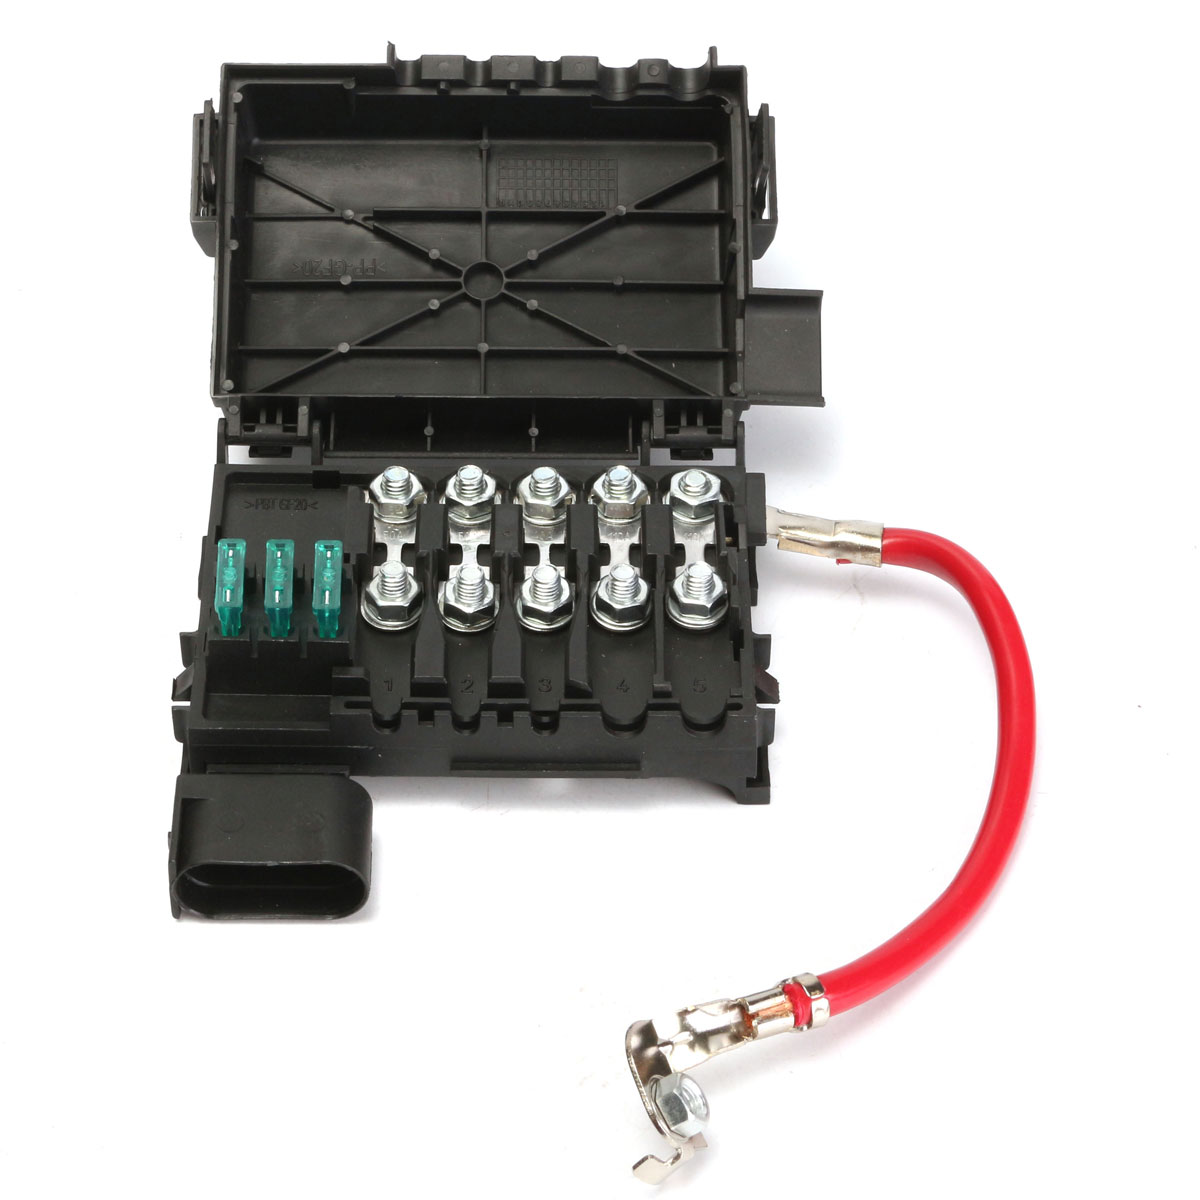 2002 Vw Jetta Fuse Box On Top Of Battery House Wiring Diagram Terminal Insurance Tablets For Golf Mk4 Rh Aliexpress Com